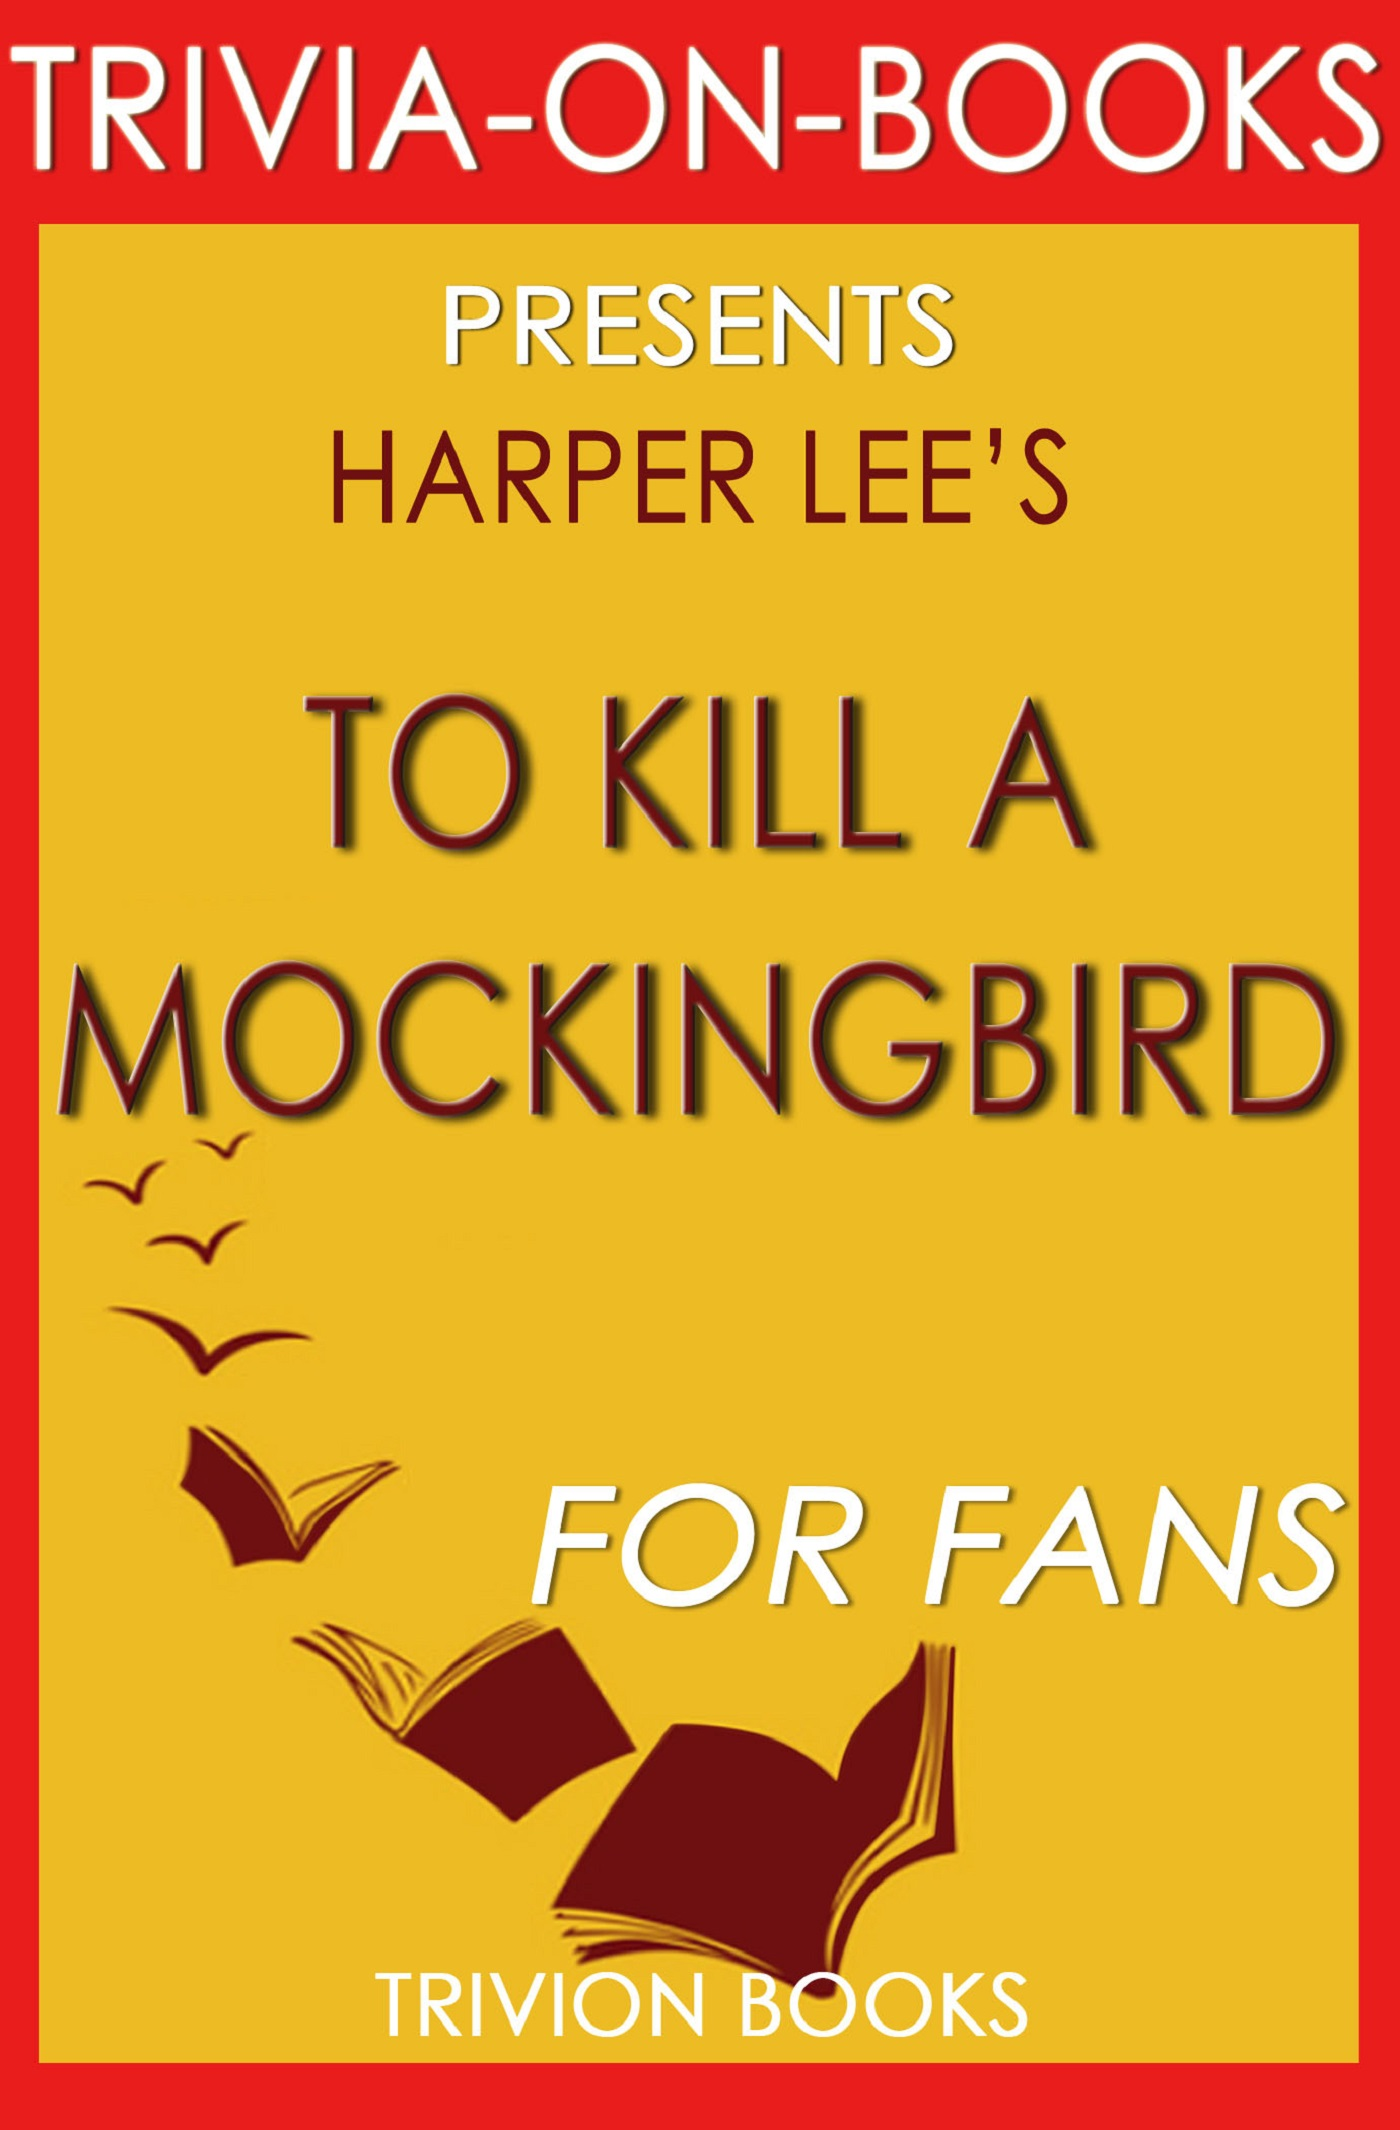 a literary analysis of the book to kill a mockingbird by harper lee In to kill a mockingbird harper lee uses the mockingbird symbolize of tom and boo boo radley is an outcast in the neighborhood, and lee is trying to show that every neighborhood has a boo in it she relates tom robinson to boo radley, and shows that tom reflects society on a larger scale.